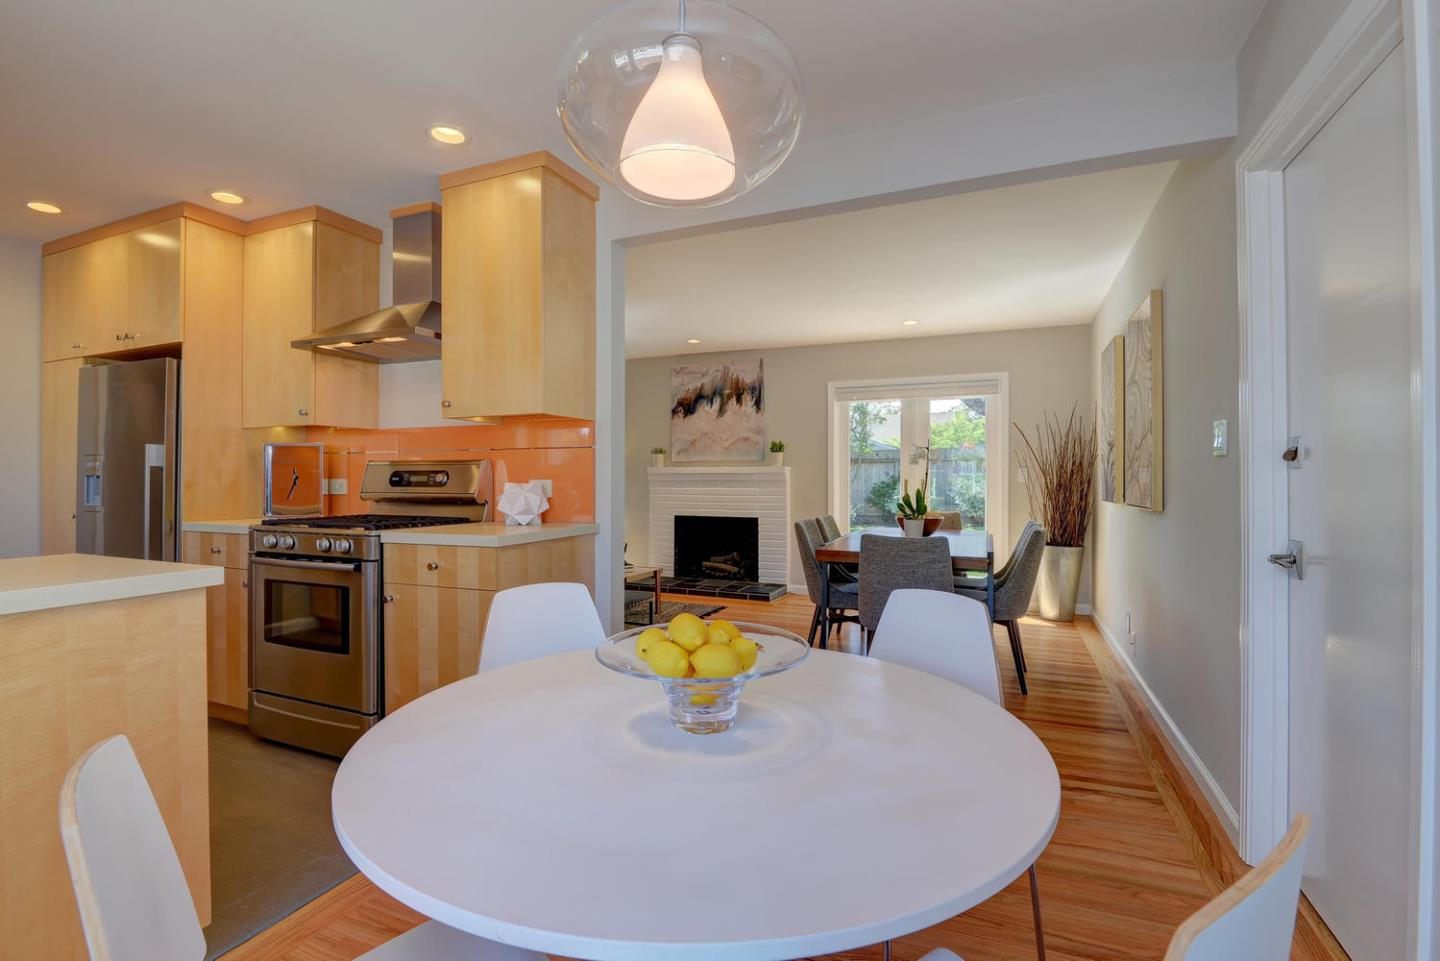 Additional photo for property listing at 1082 Plymouth Dr  SUNNYVALE, CALIFORNIA 94087